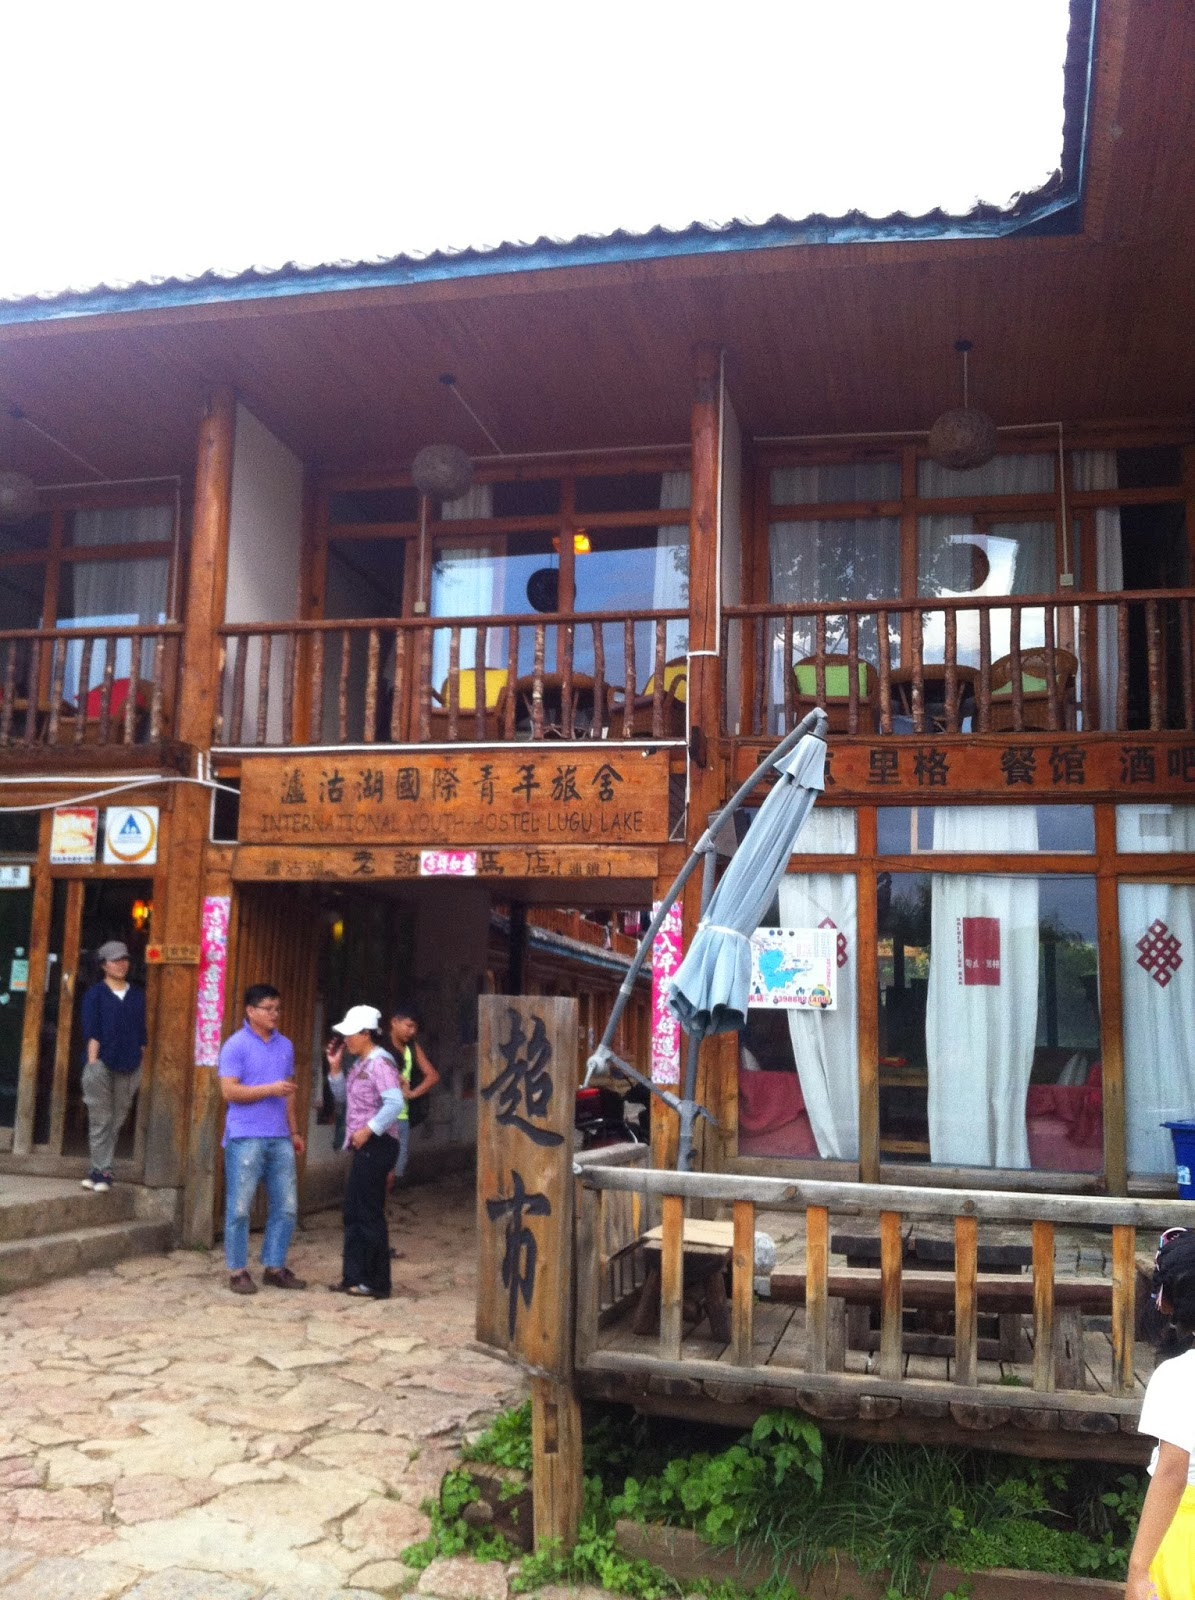 The YHA Youth Hostel in Lige Village, Lugu Lake